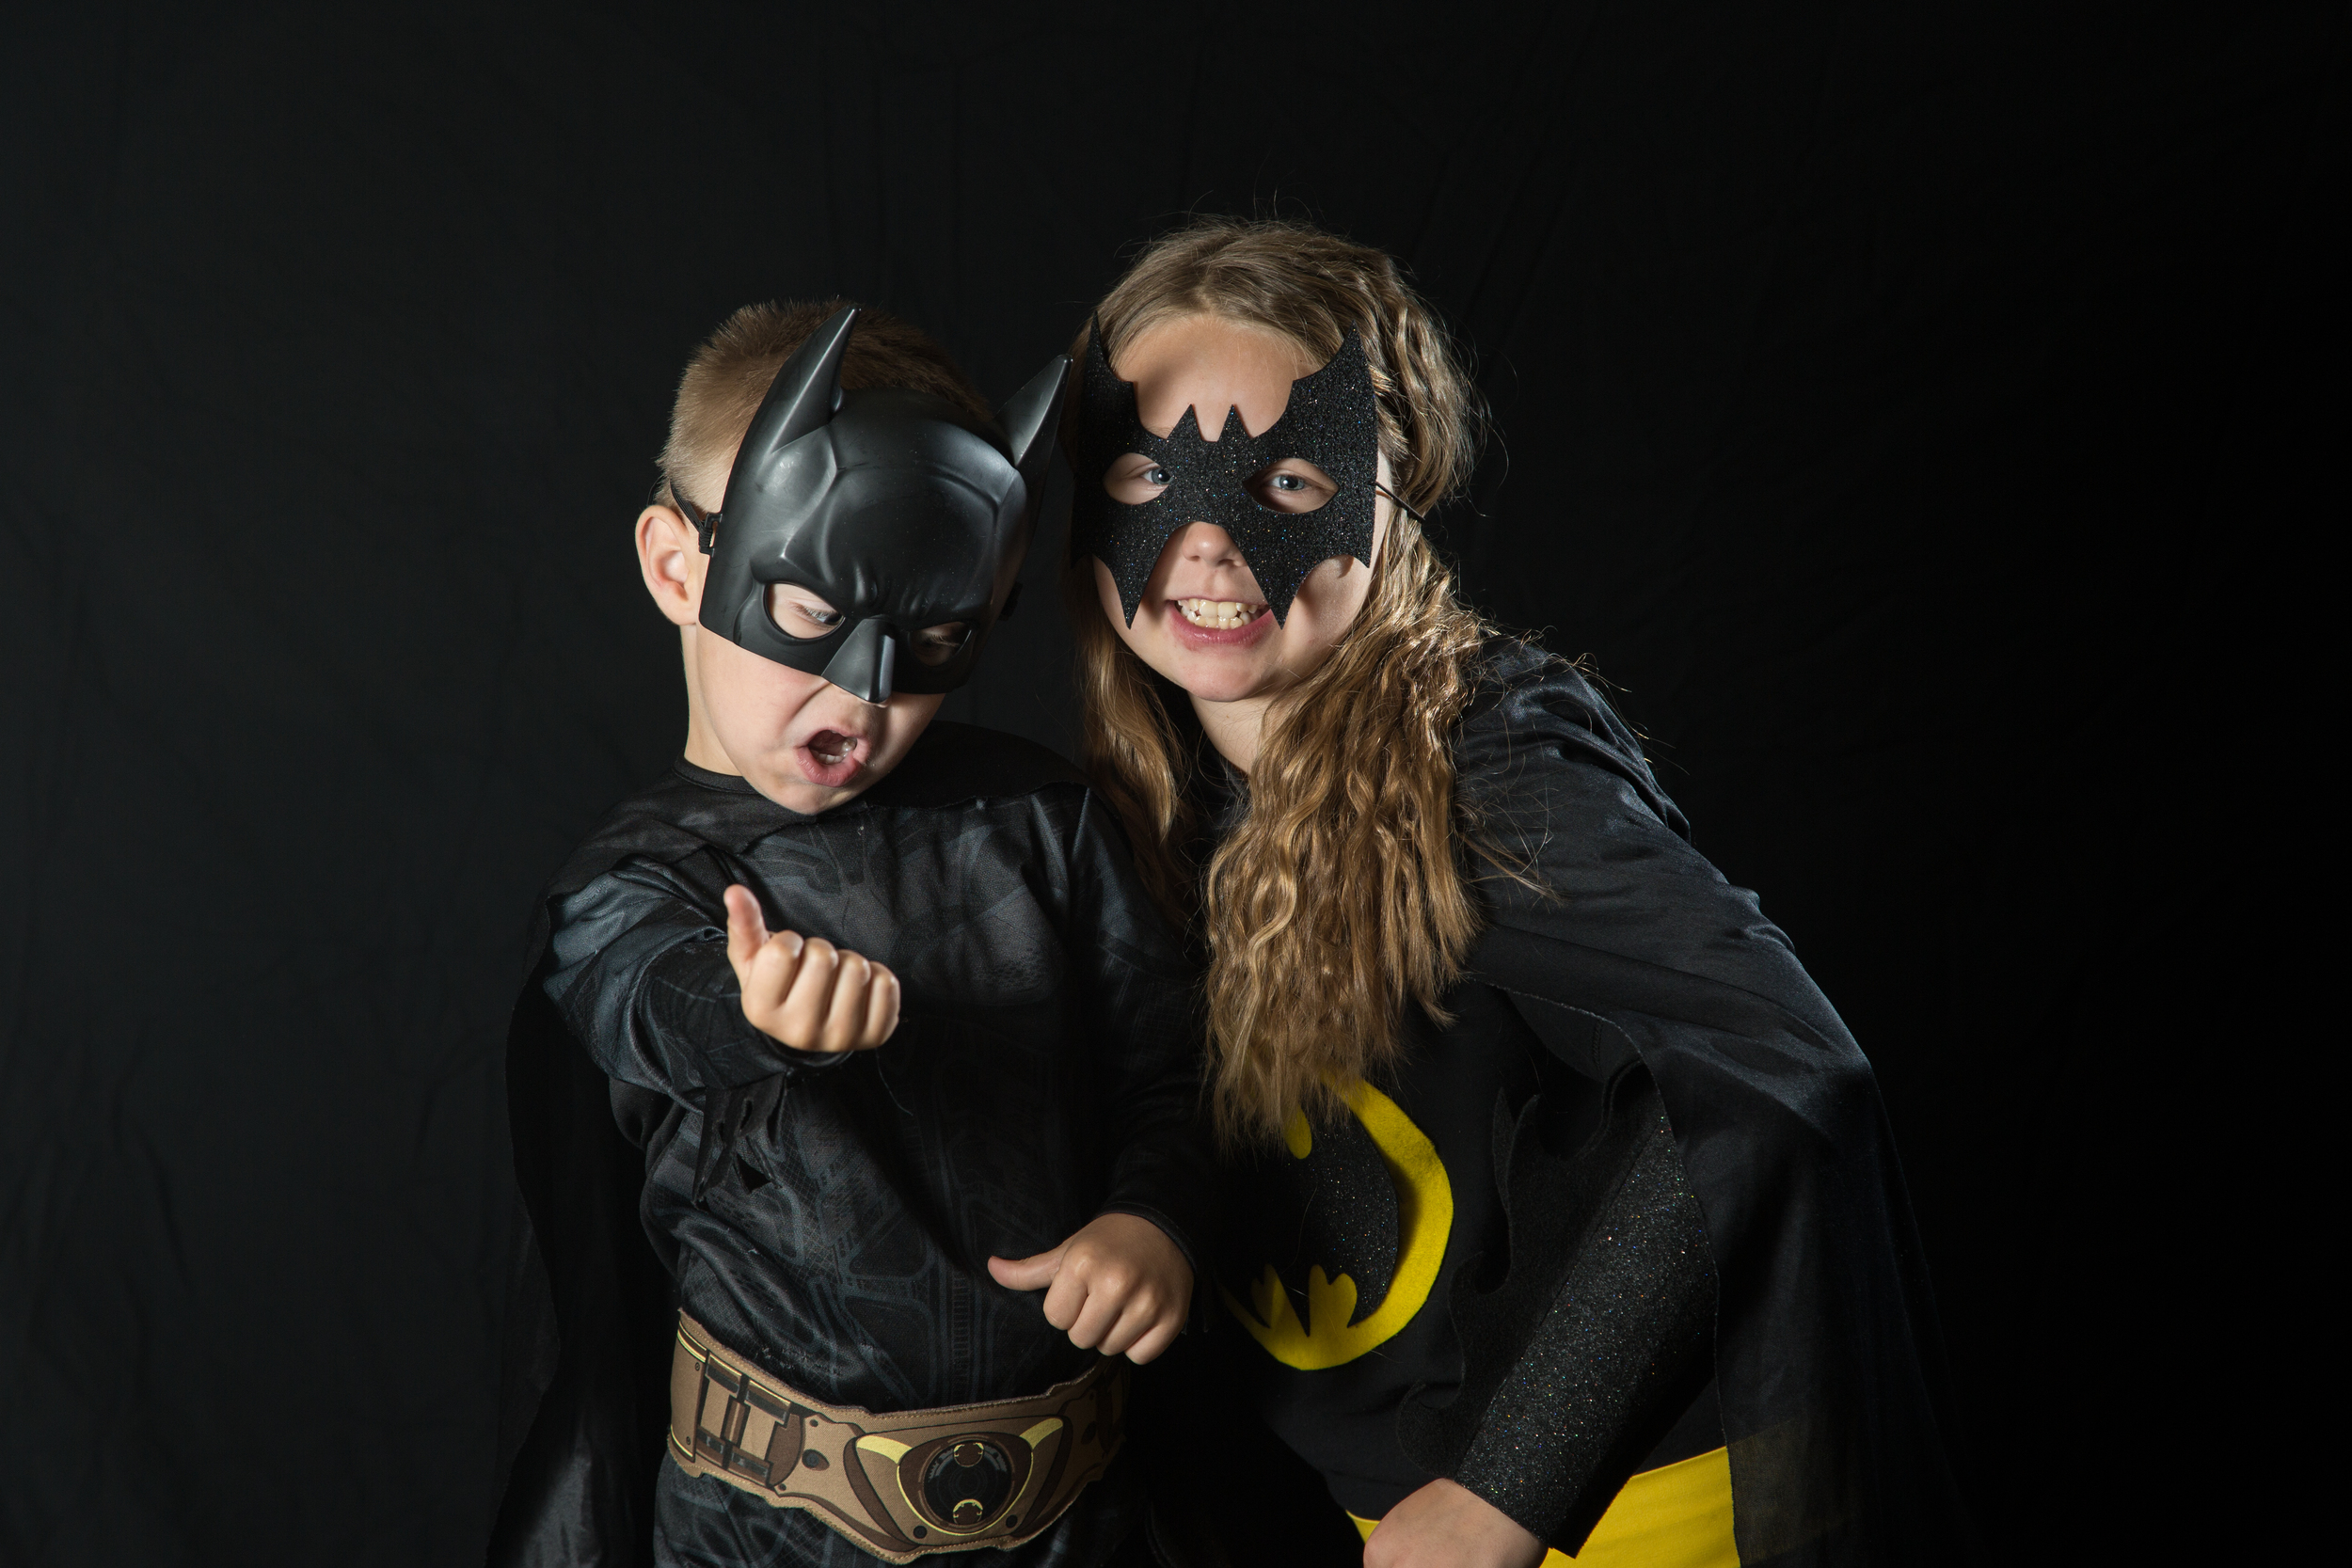 Batman and Batwomen